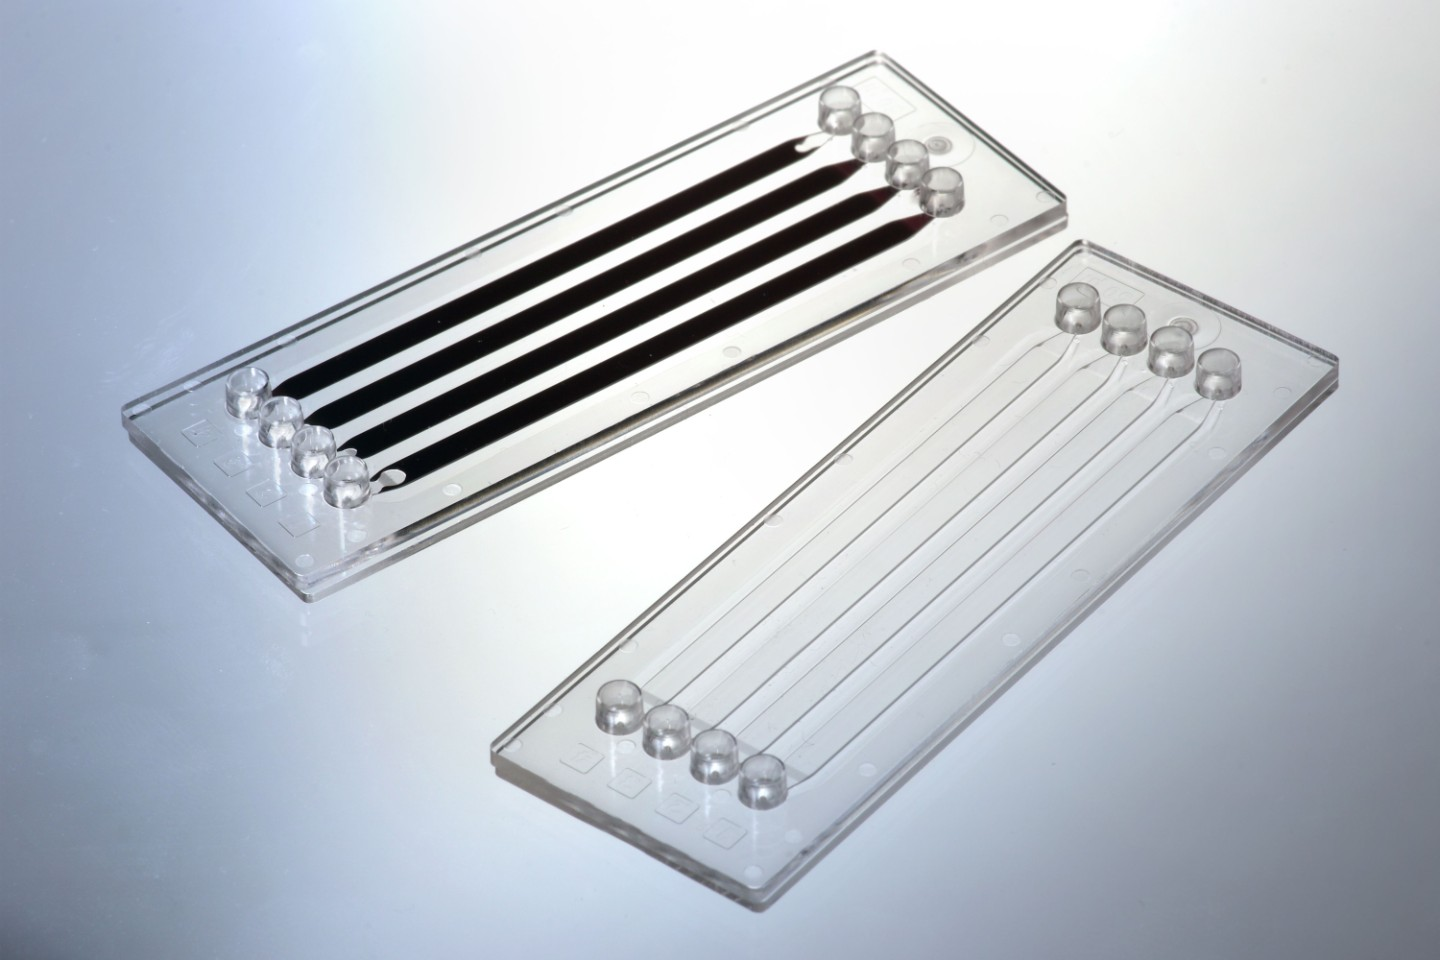 With the developed joining process, in which a thulium fiber laser is used, high-precision welding of microfluidic components can be achieved.